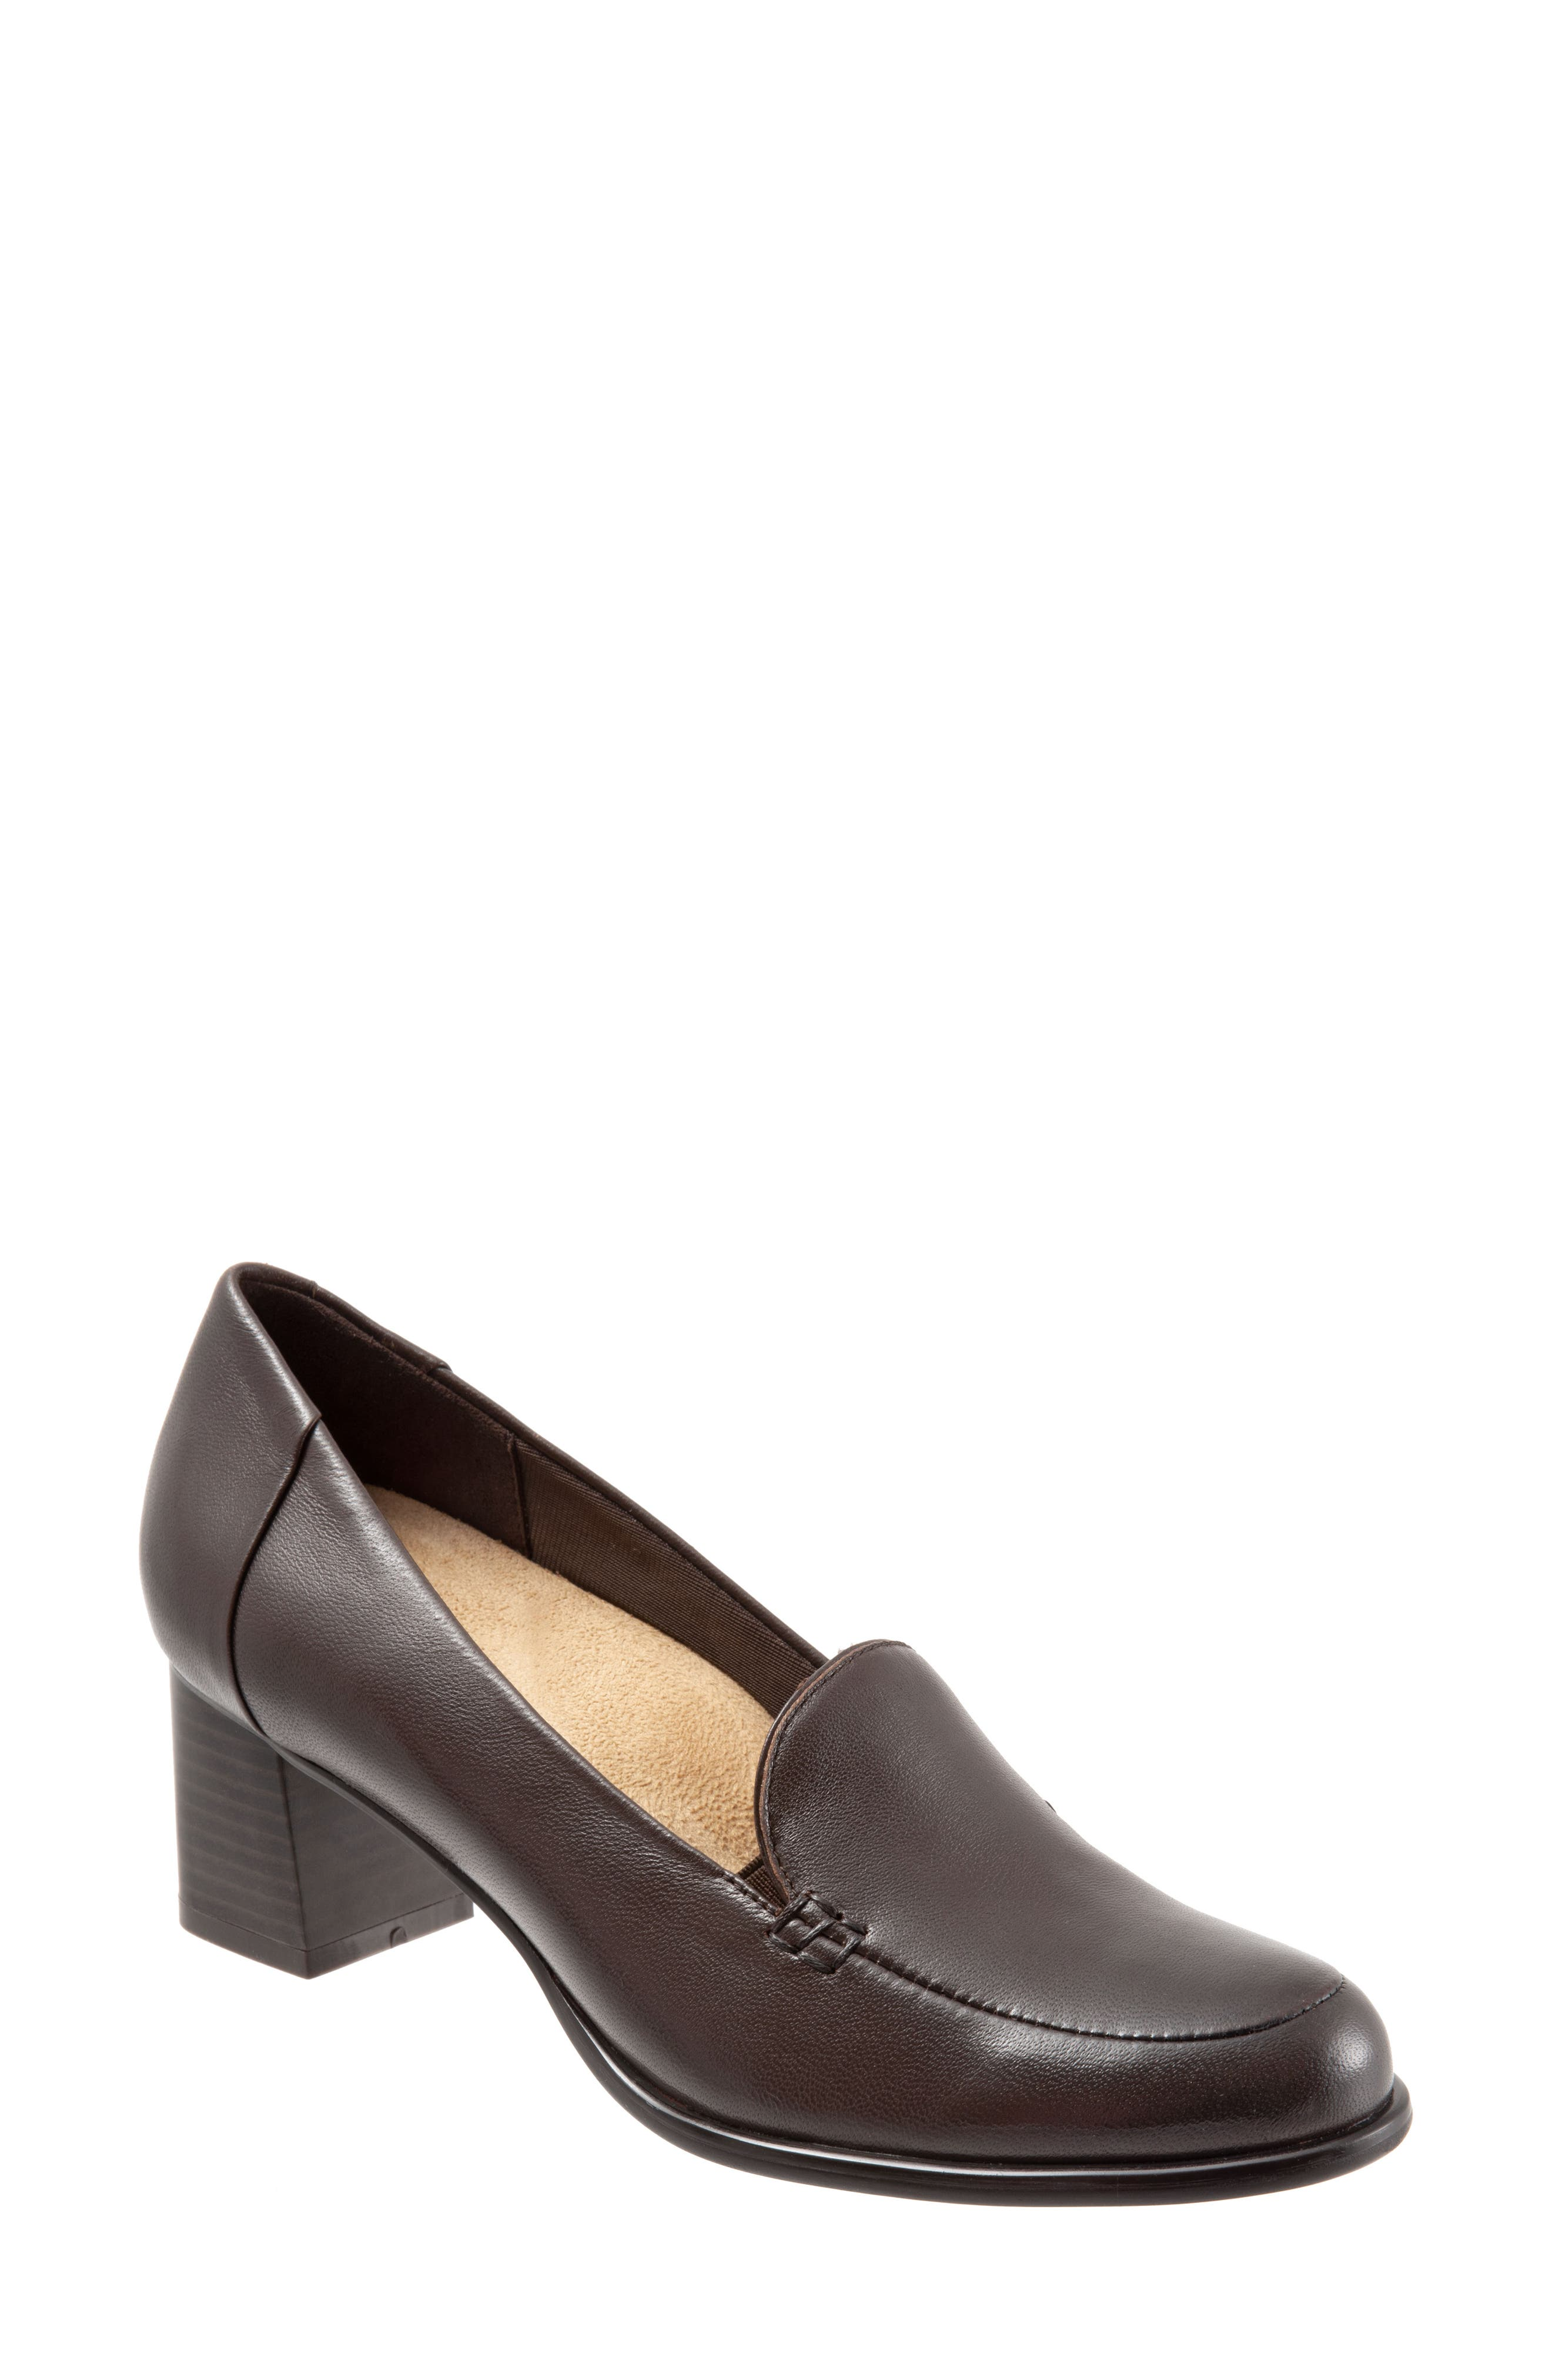 Quincy Loafer Pump,                         Main,                         color, DARK BROWN LEATHER